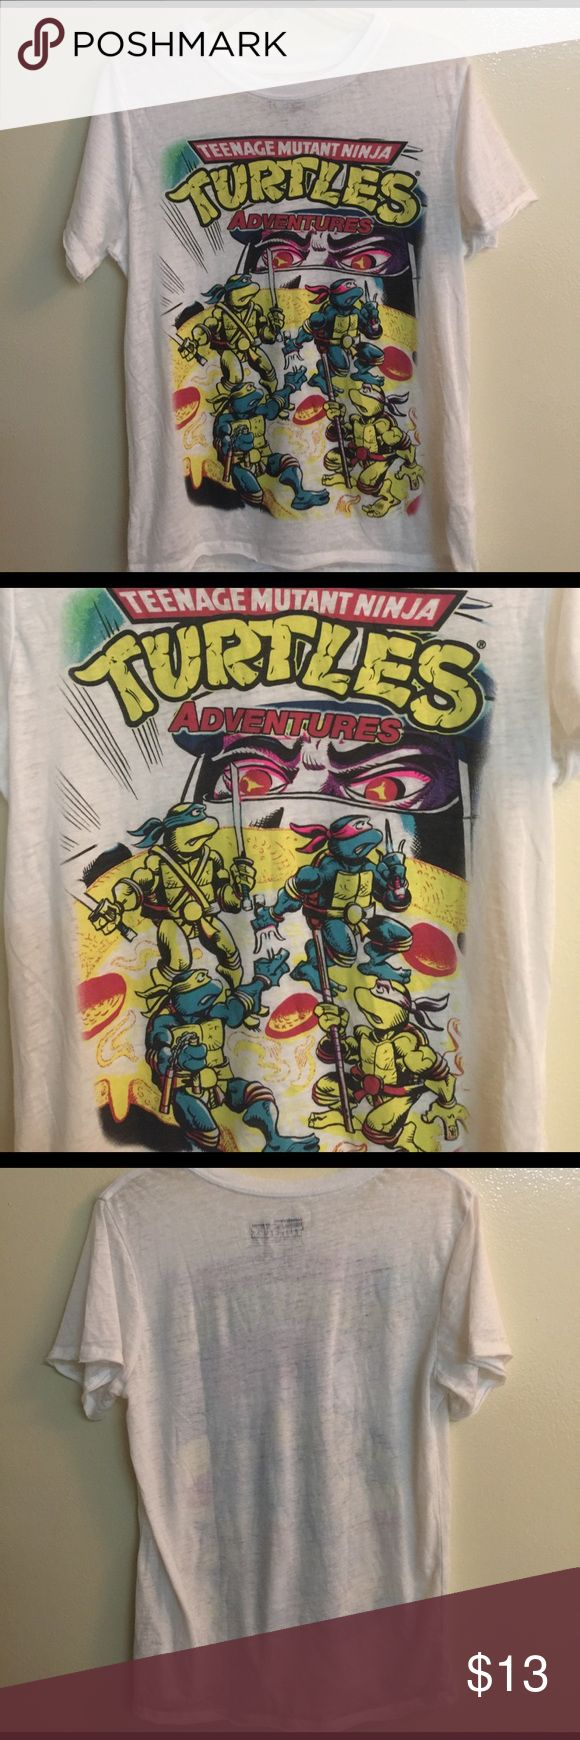 Nickelodeon Ninja Turtles Women's Tee Top This cute shirt will be a hit with your teen or Ninja cult college student! It is brand new never worn and a very lightweight 53% Cotton and 47% Polyester. It is almost weightless. This is the real deal. Nickelodeon Tops Tees - Short Sleeve